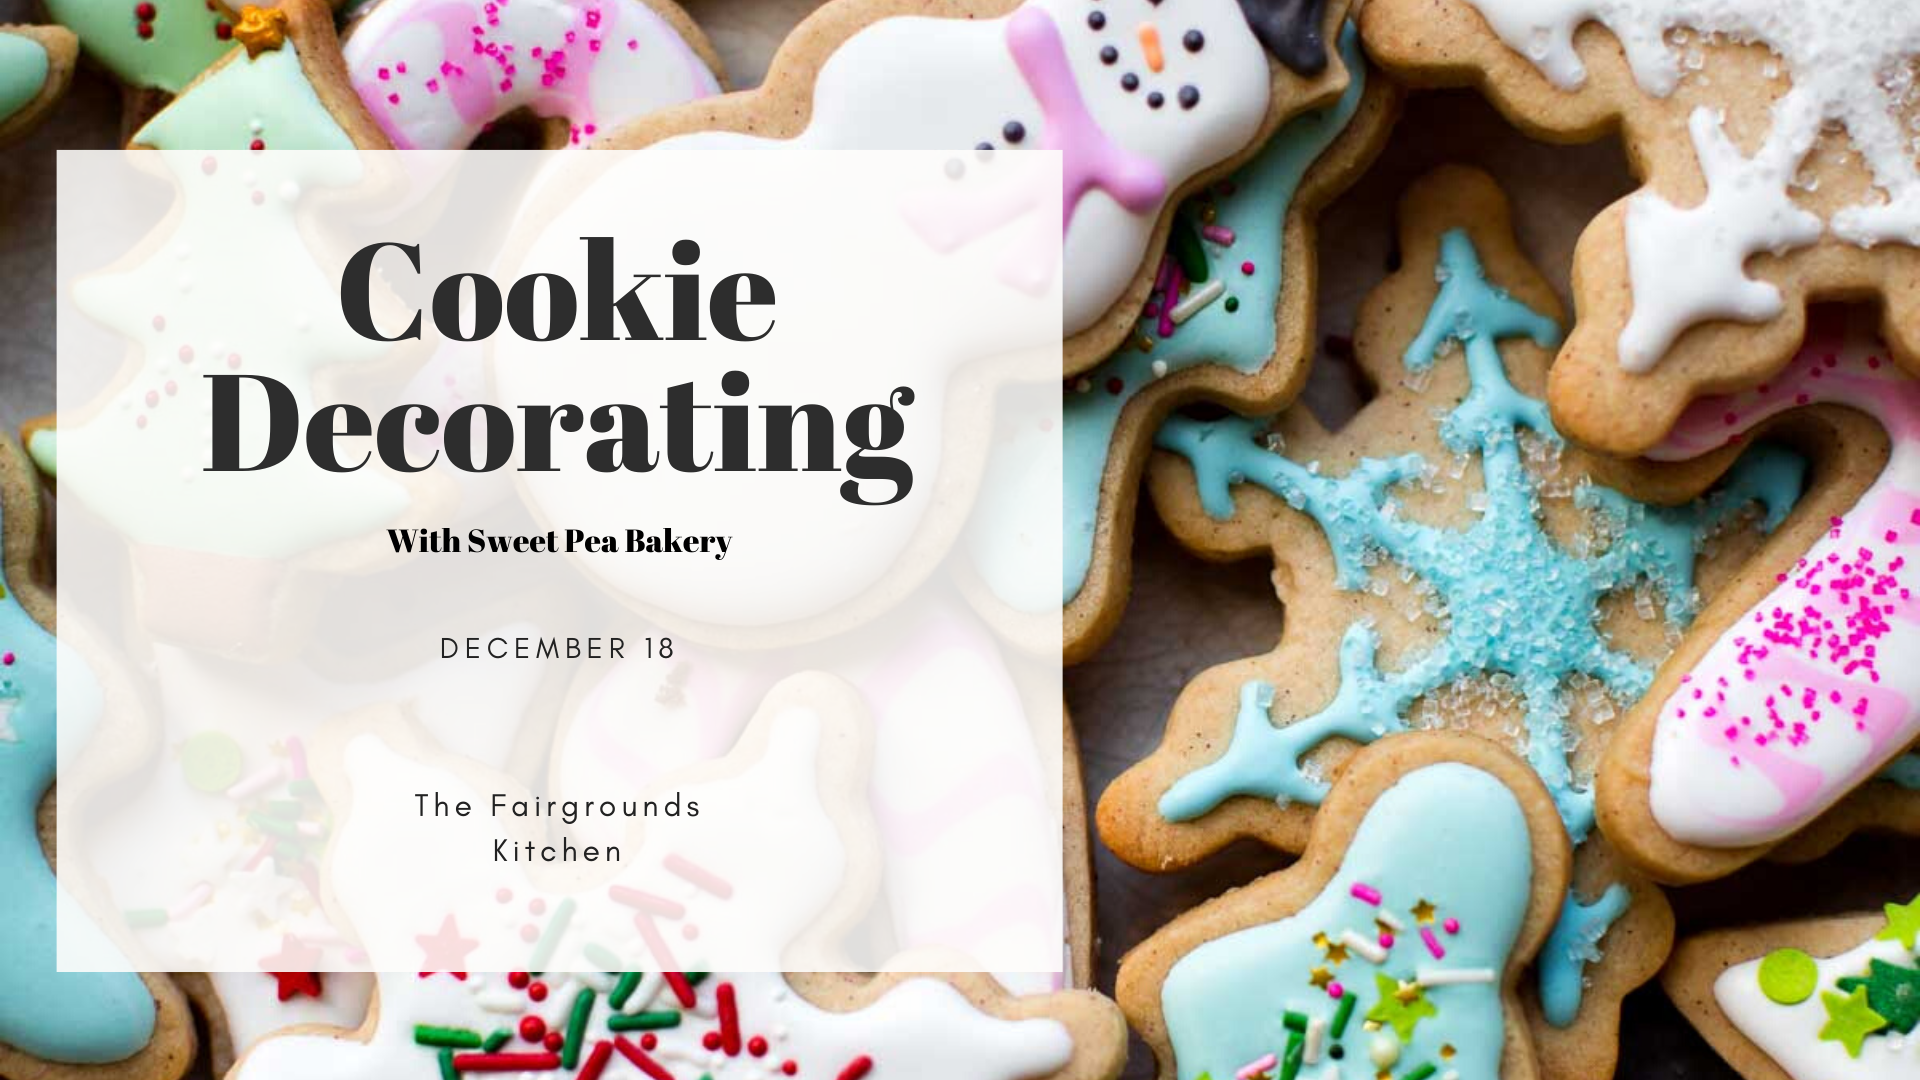 Cookie Decorating with Sweet Pea Bakery